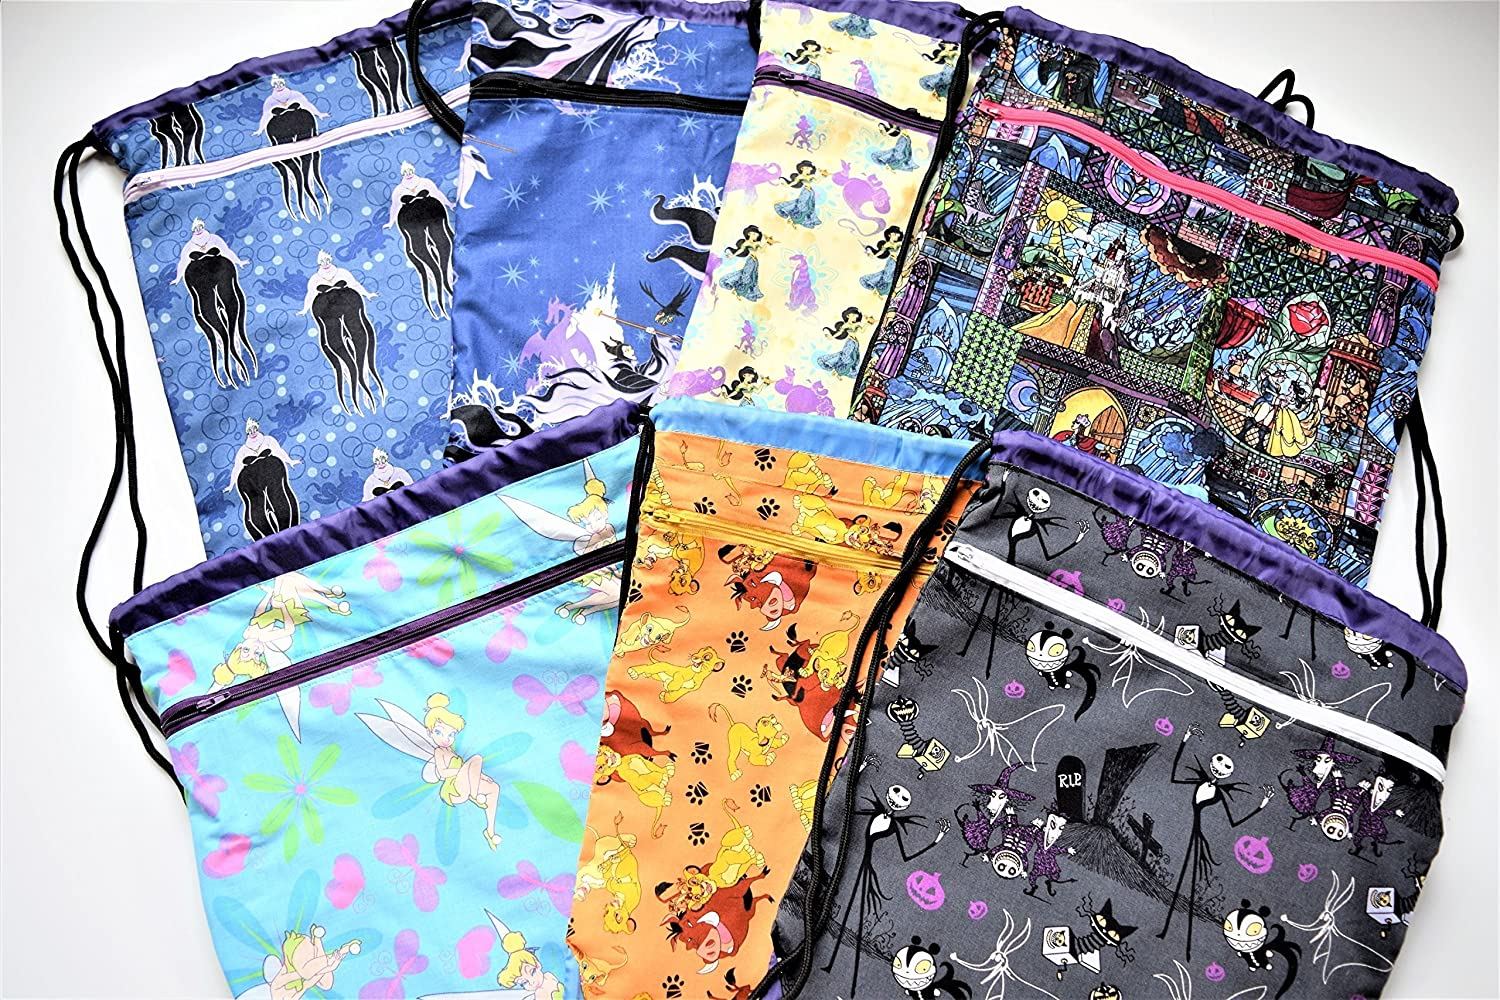 Fabric Covered,Nylon Lined,Drawstring Backpack School,Summer Vacation,My Little Pony,Tinkerbell,Lion King,Maleficent,Ursula,Jasmine